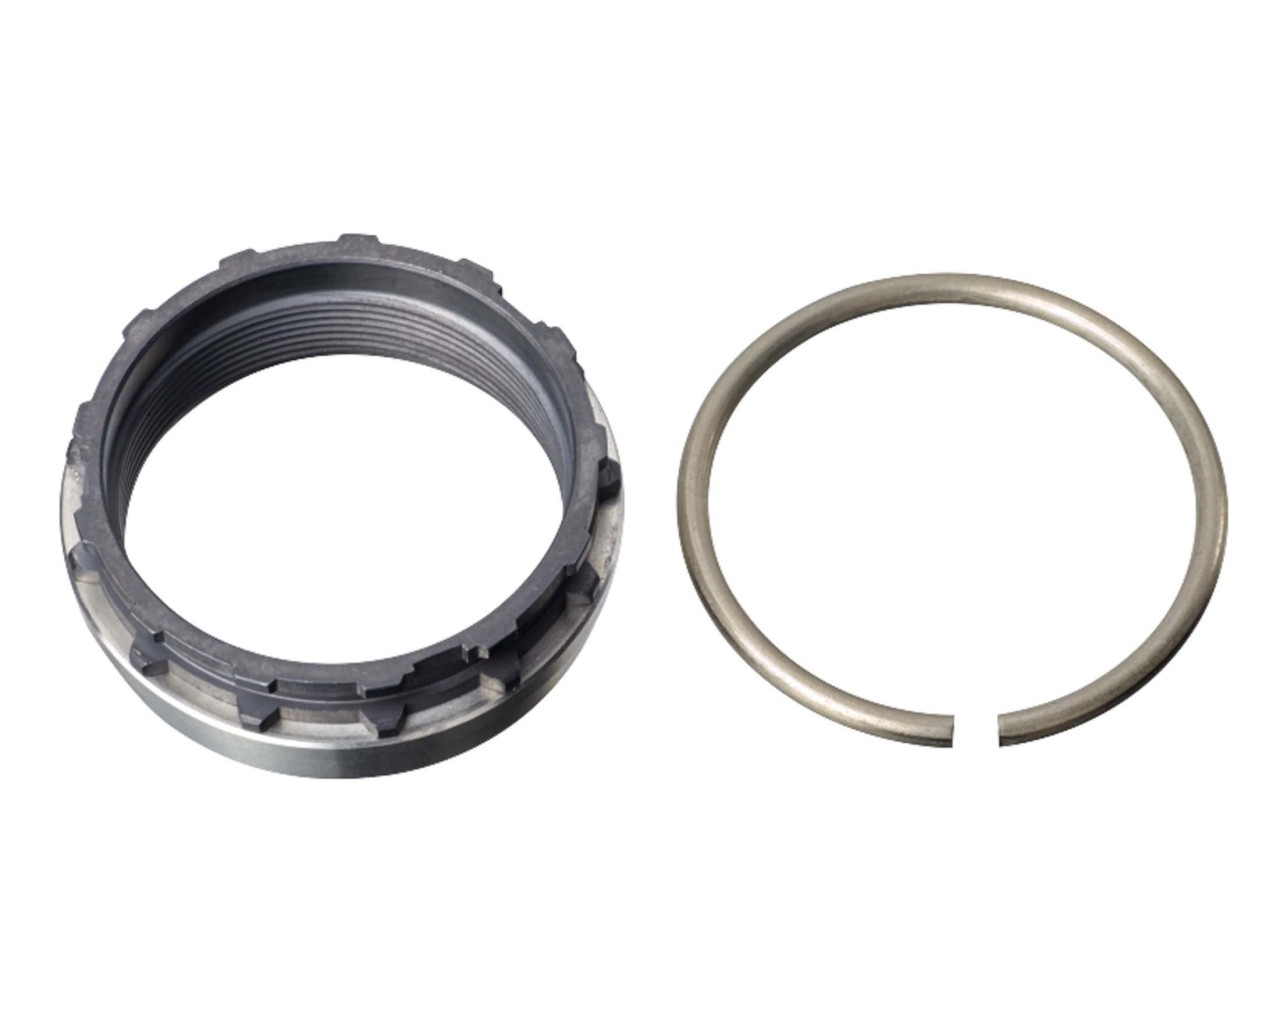 Rohloff Splined Sprocket Adaper with Snap Ring for Splined Carrier Standard